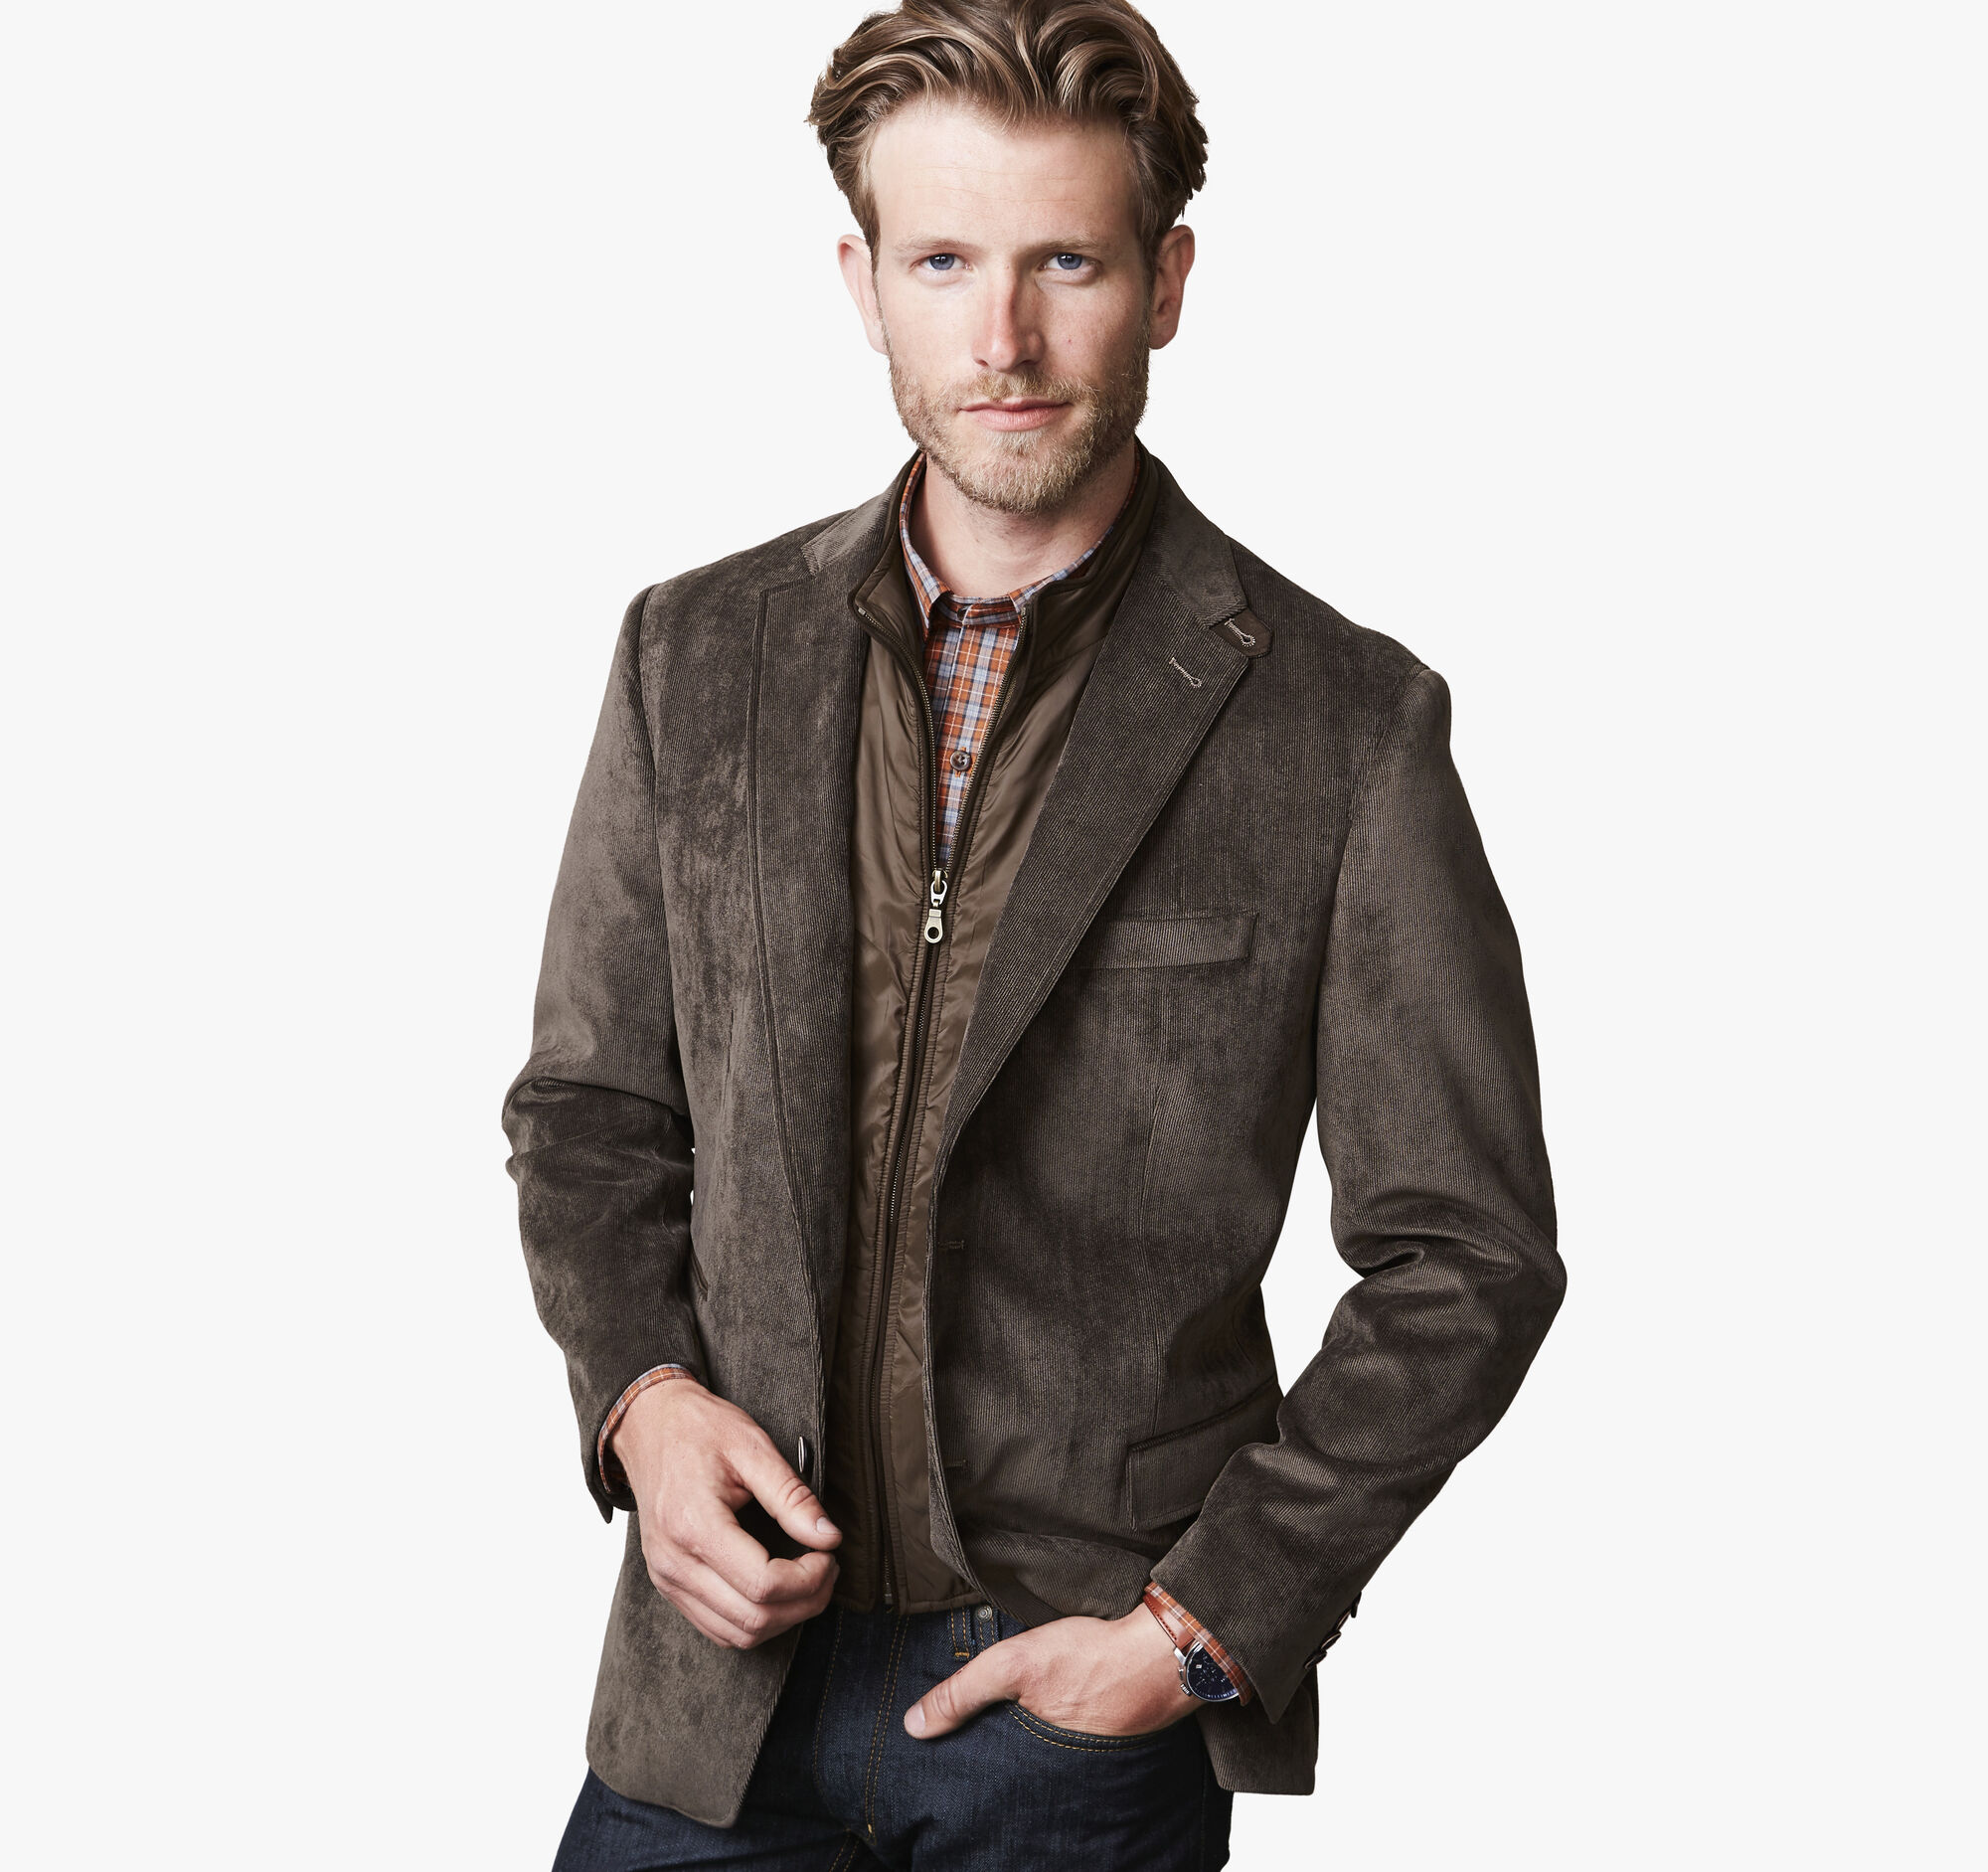 While Johnston & Murphy specializes in dress shoes and boots, you can upgrade your entire wardrobe shopping in their online store. Both men and women will find all kinds of apparel and accessories including jackets, blazers, socks, scarves and much more.